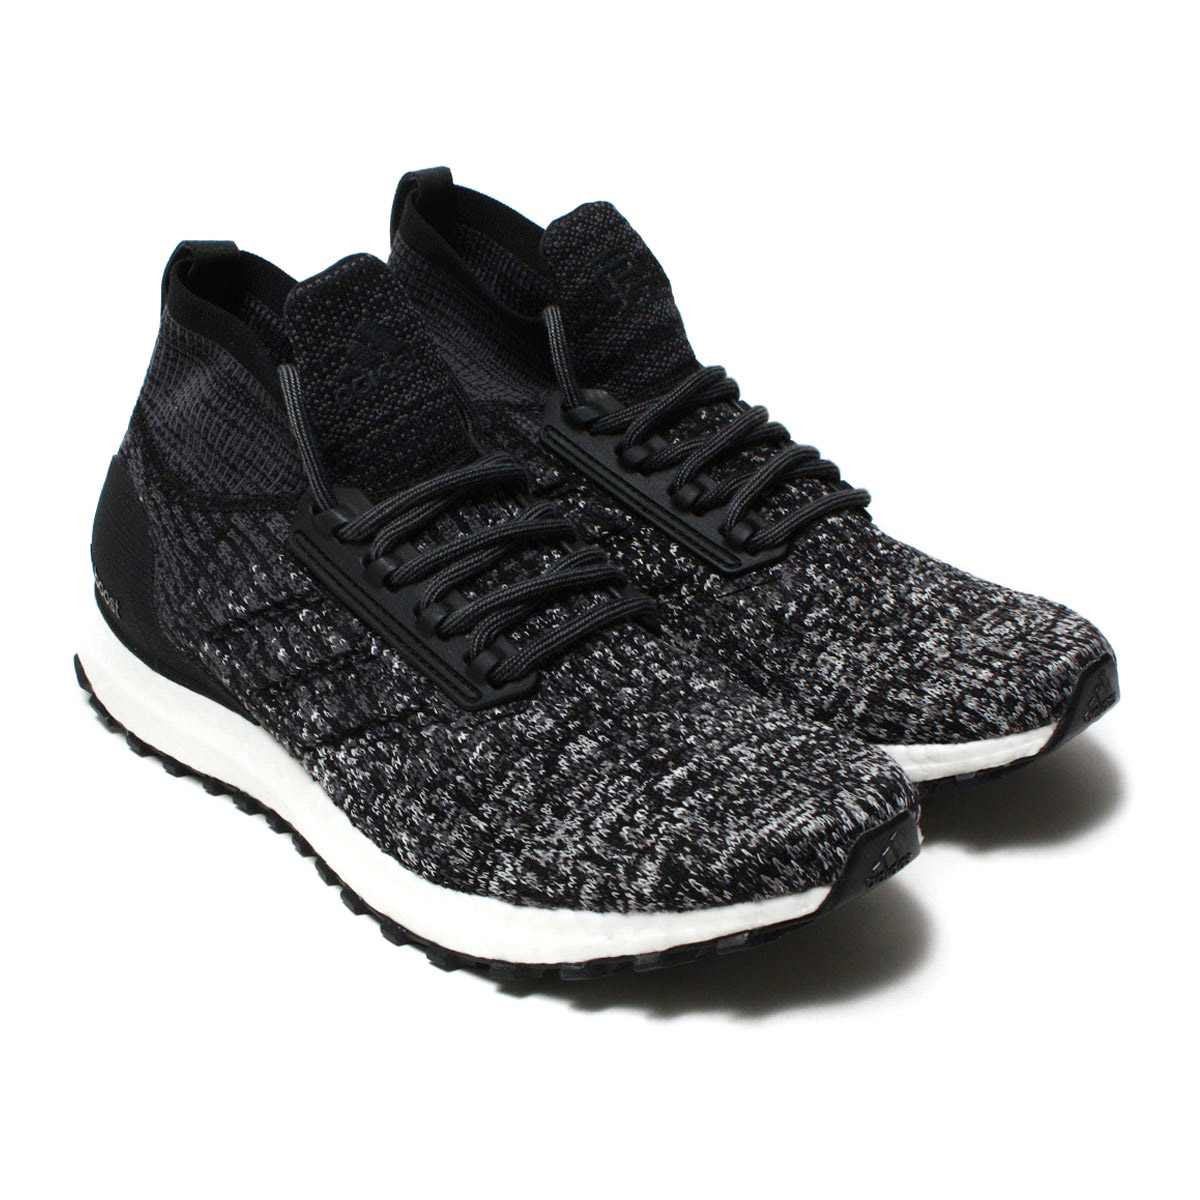 6d305351baa20 adidas Originals UltraBOOST ALL TERRAIN RC (Adidas originals ultra boost  oar terra in RC)Core Black Core Black Running White 18SP-I